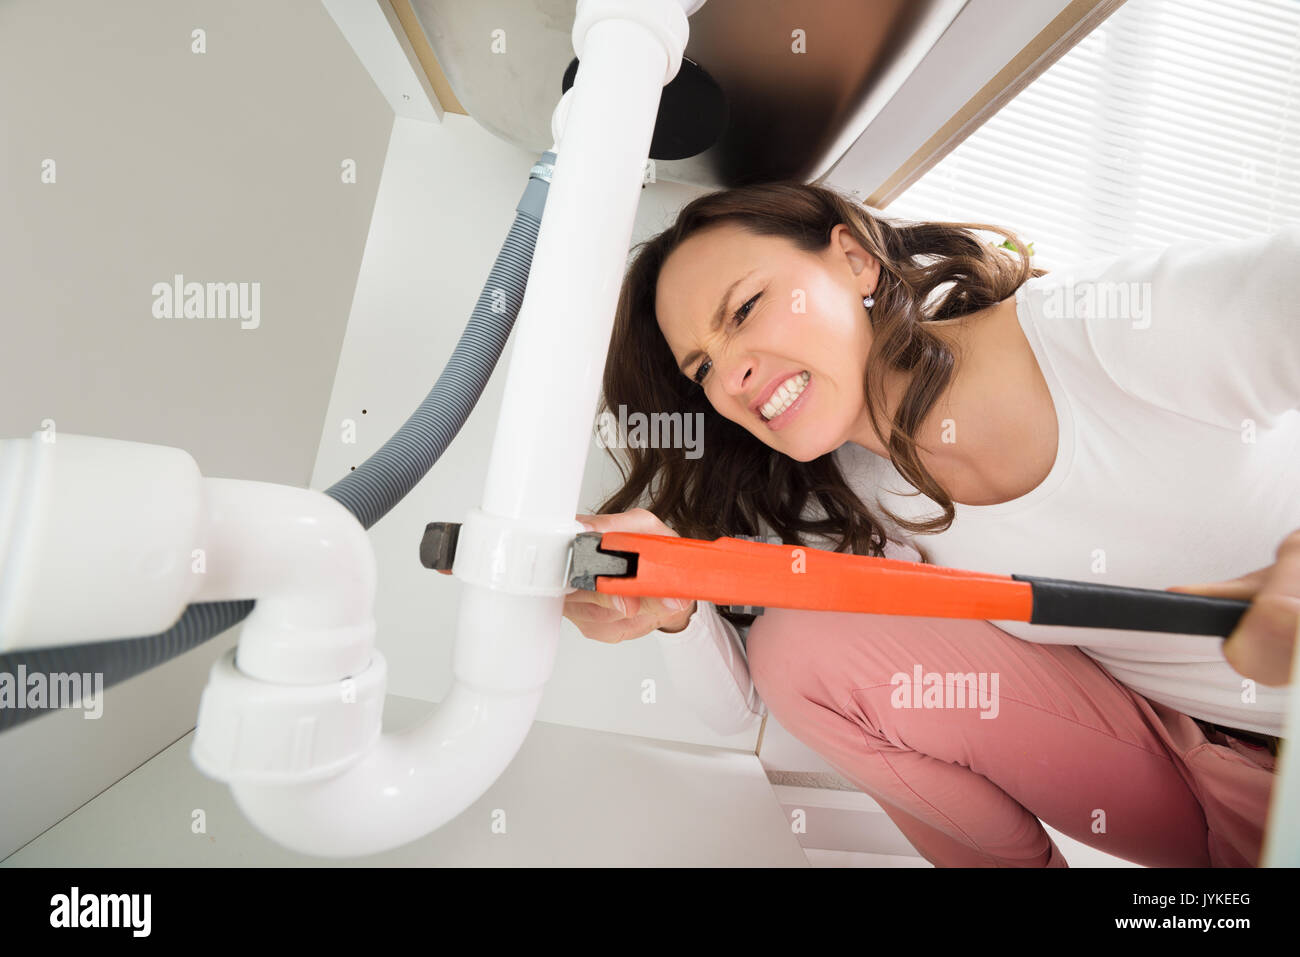 Close-up Of Woman With Monkey Wrench Tightening White Pipe - Stock Image